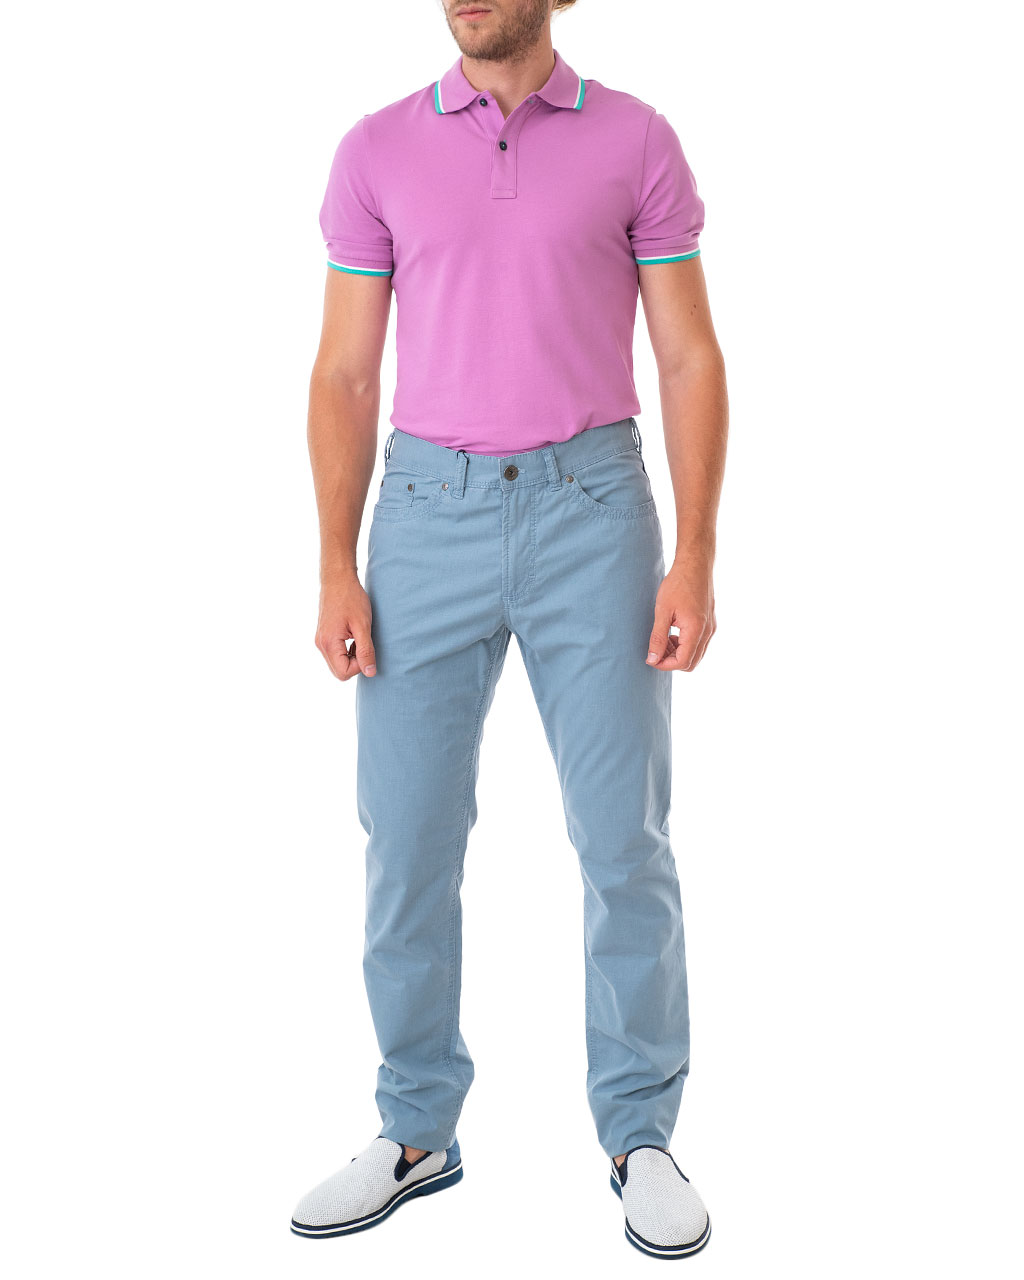 Men's trousers 410031-066/6             (2)